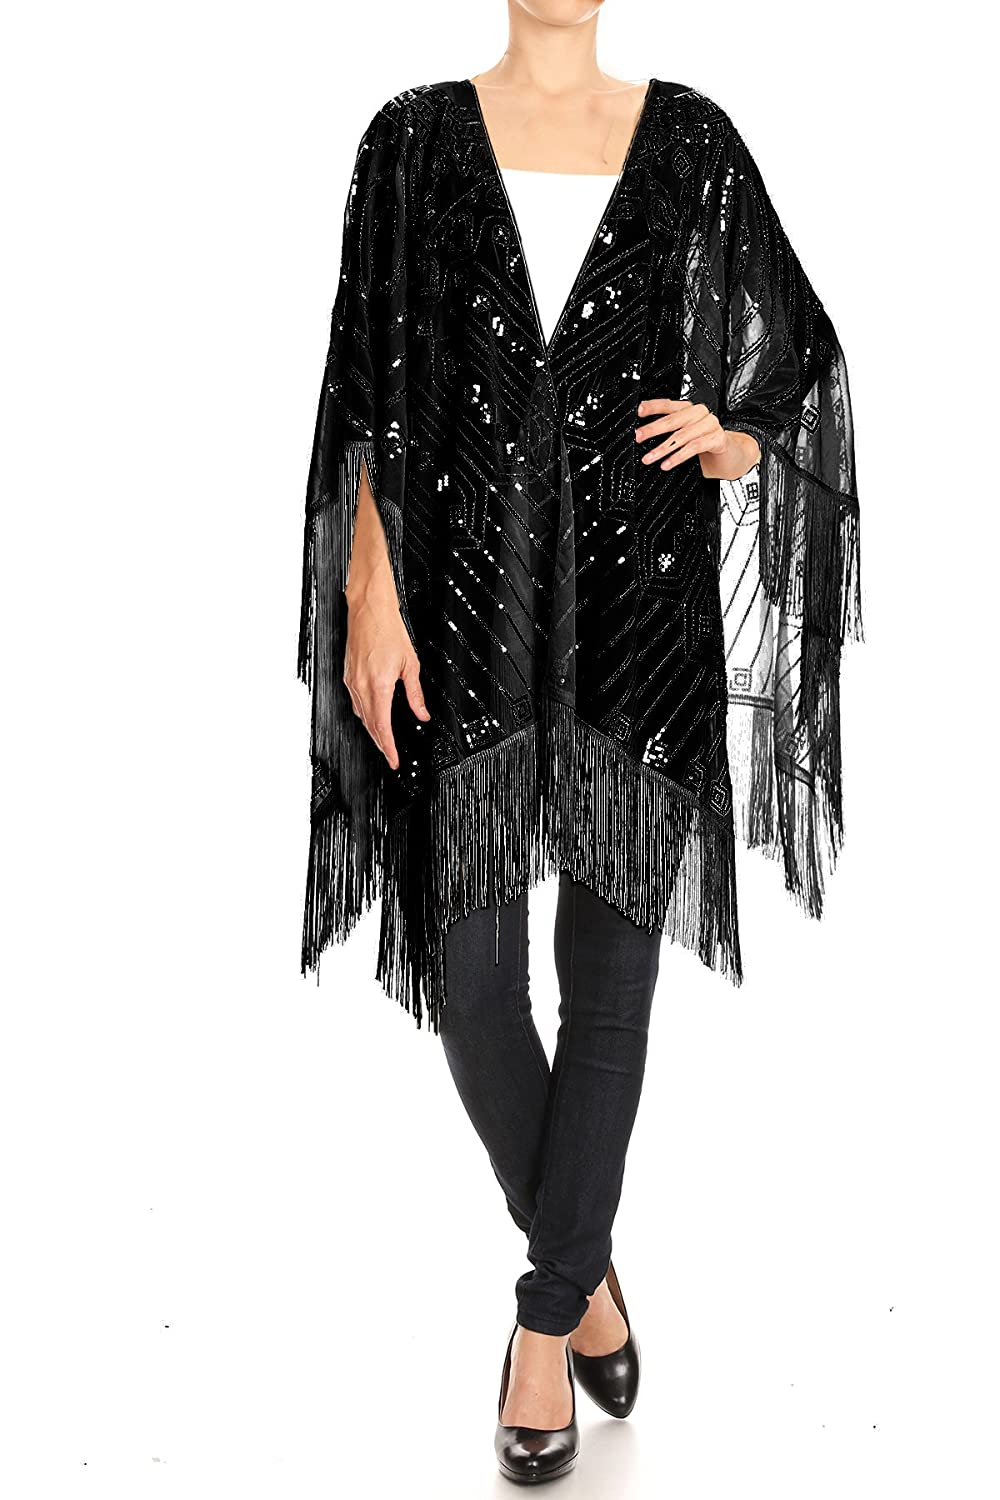 1920s Style Shawls, Wraps, Scarves Anna-Kaci Womens Oversized Hand Beaded and Sequin Evening Shawl Wrap with Fringe $26.90 AT vintagedancer.com